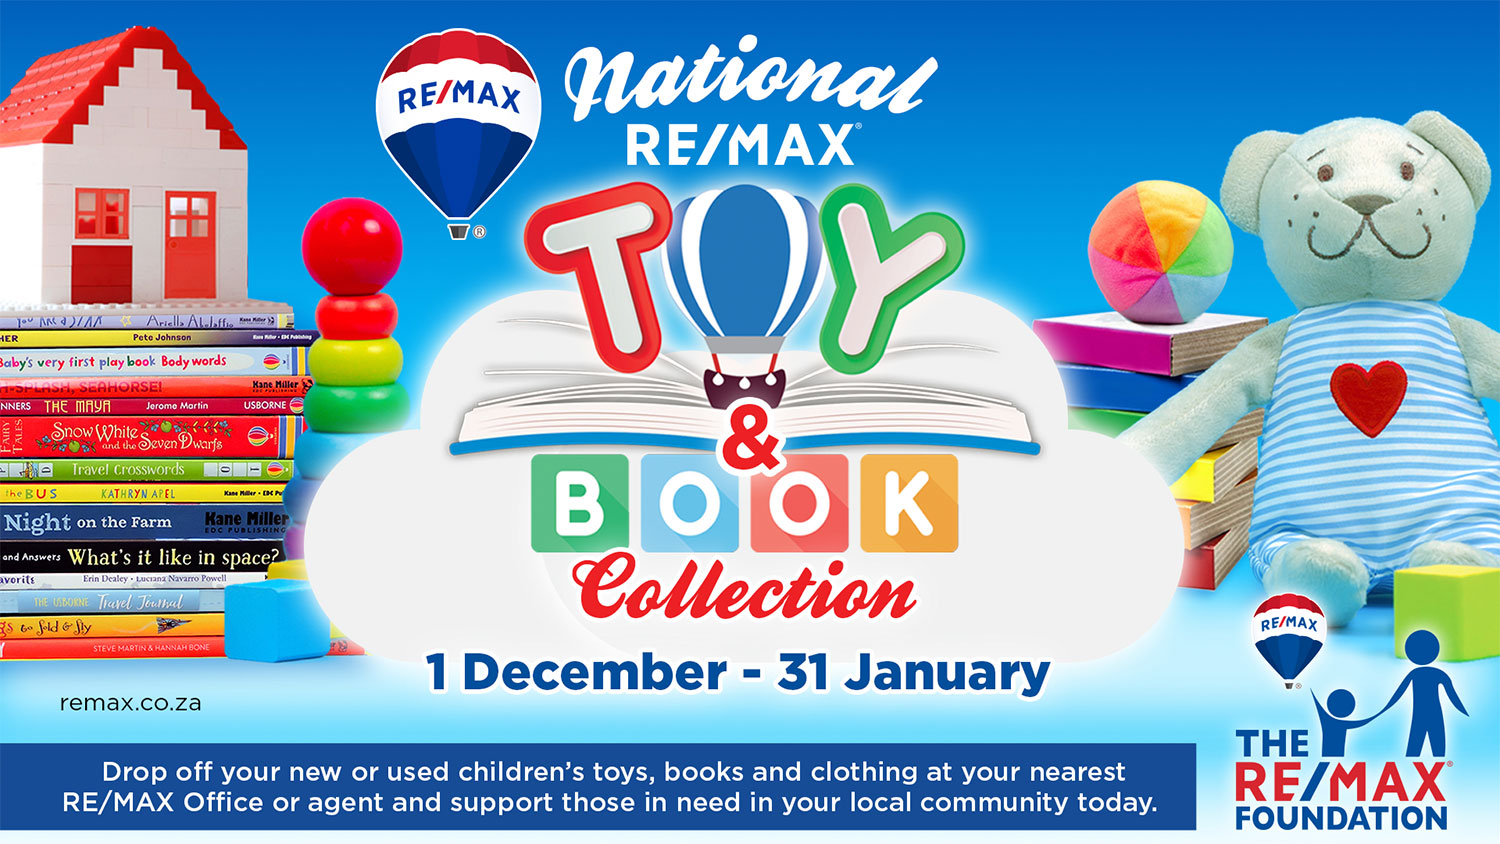 RE/MAX OFFICES ACT AS DONATION DROP-OFF ZONES THIS DECEMBER